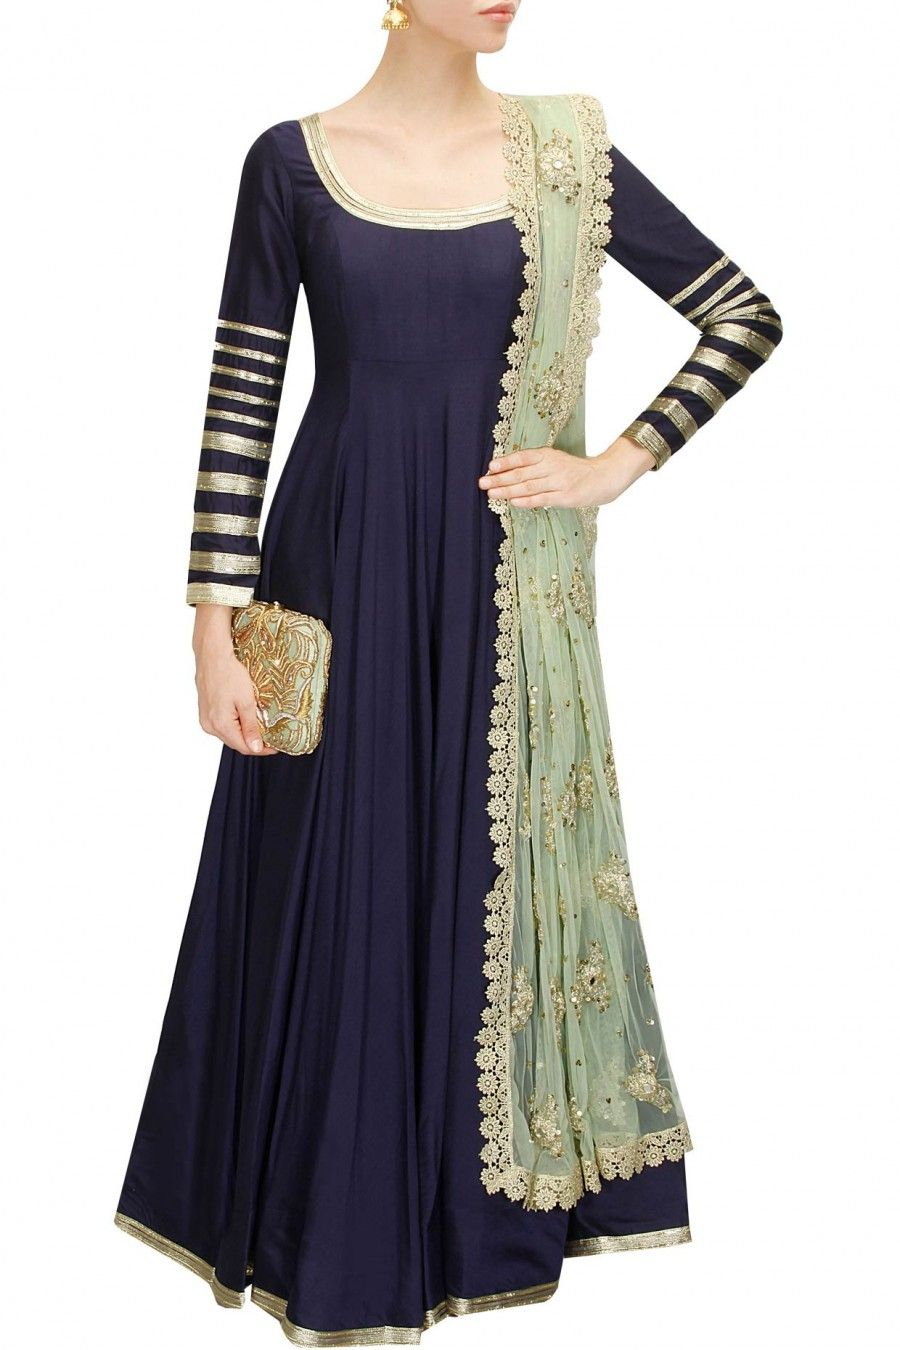 Navy blue embroidered anarkali suit available only at